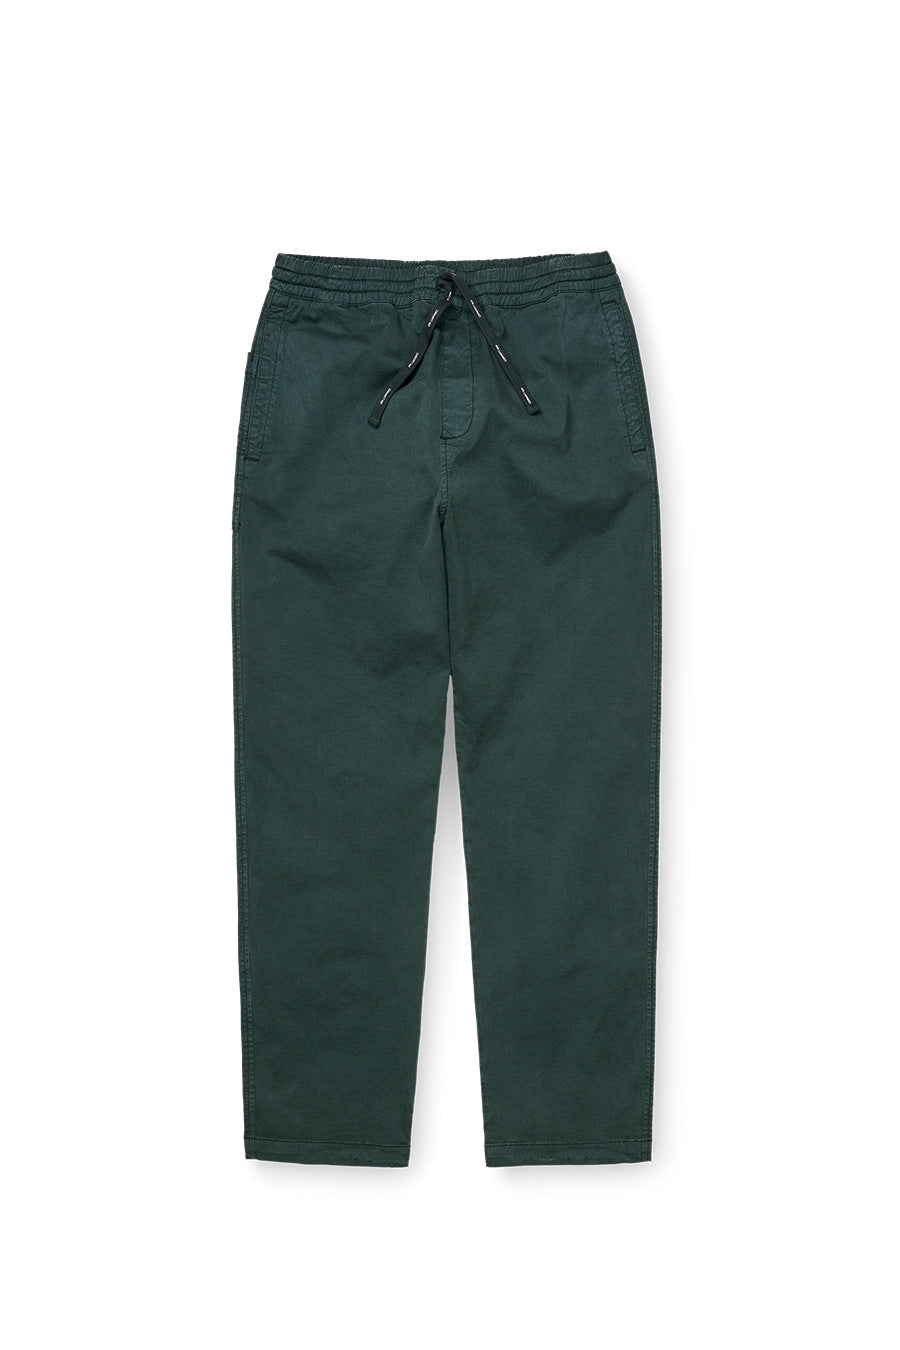 Carhartt WIP - Dark Teal Lawton Pant | 1032 SPACE